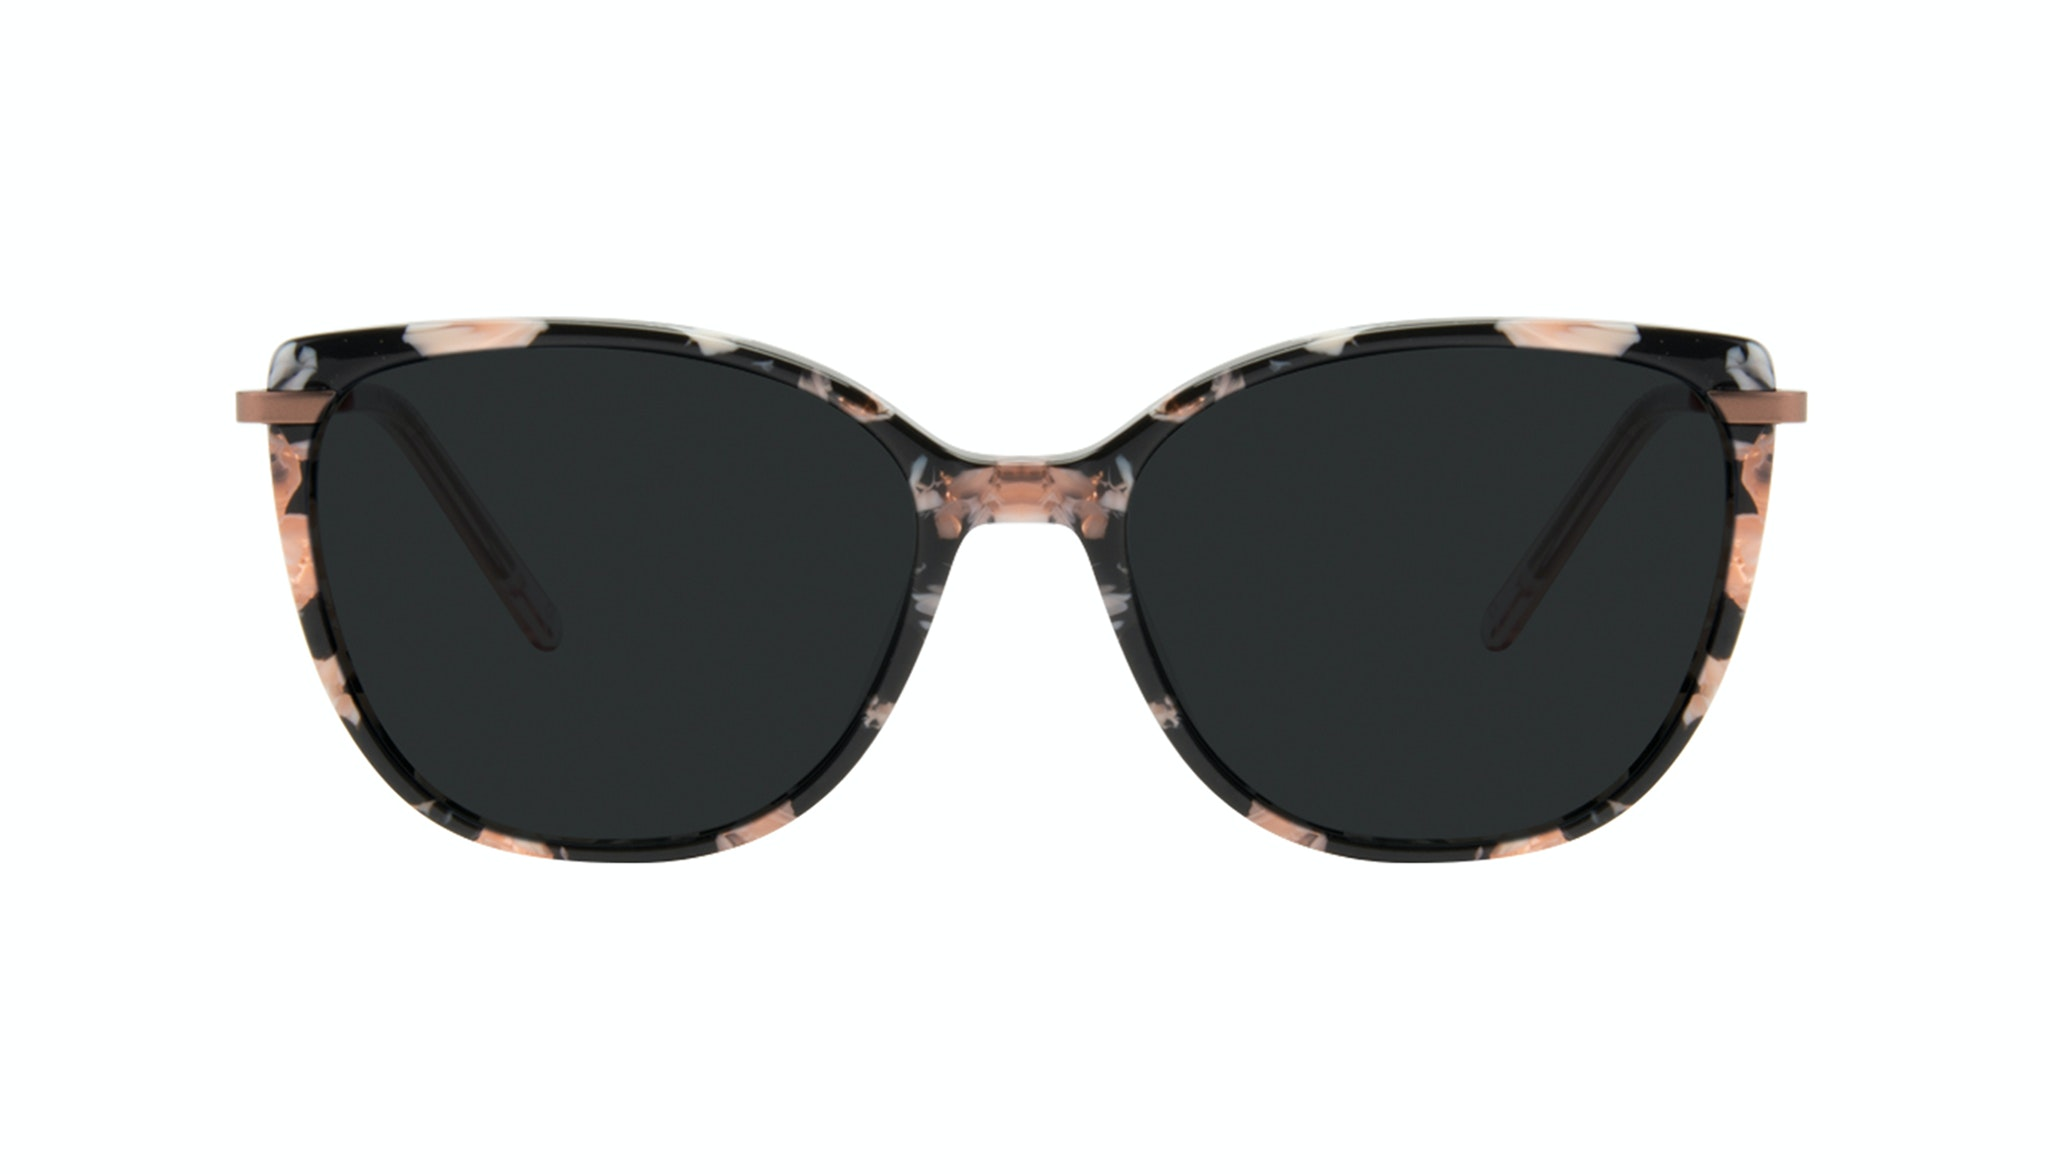 Affordable Fashion Glasses Cat Eye Rectangle Square Sunglasses Women Illusion Licorice